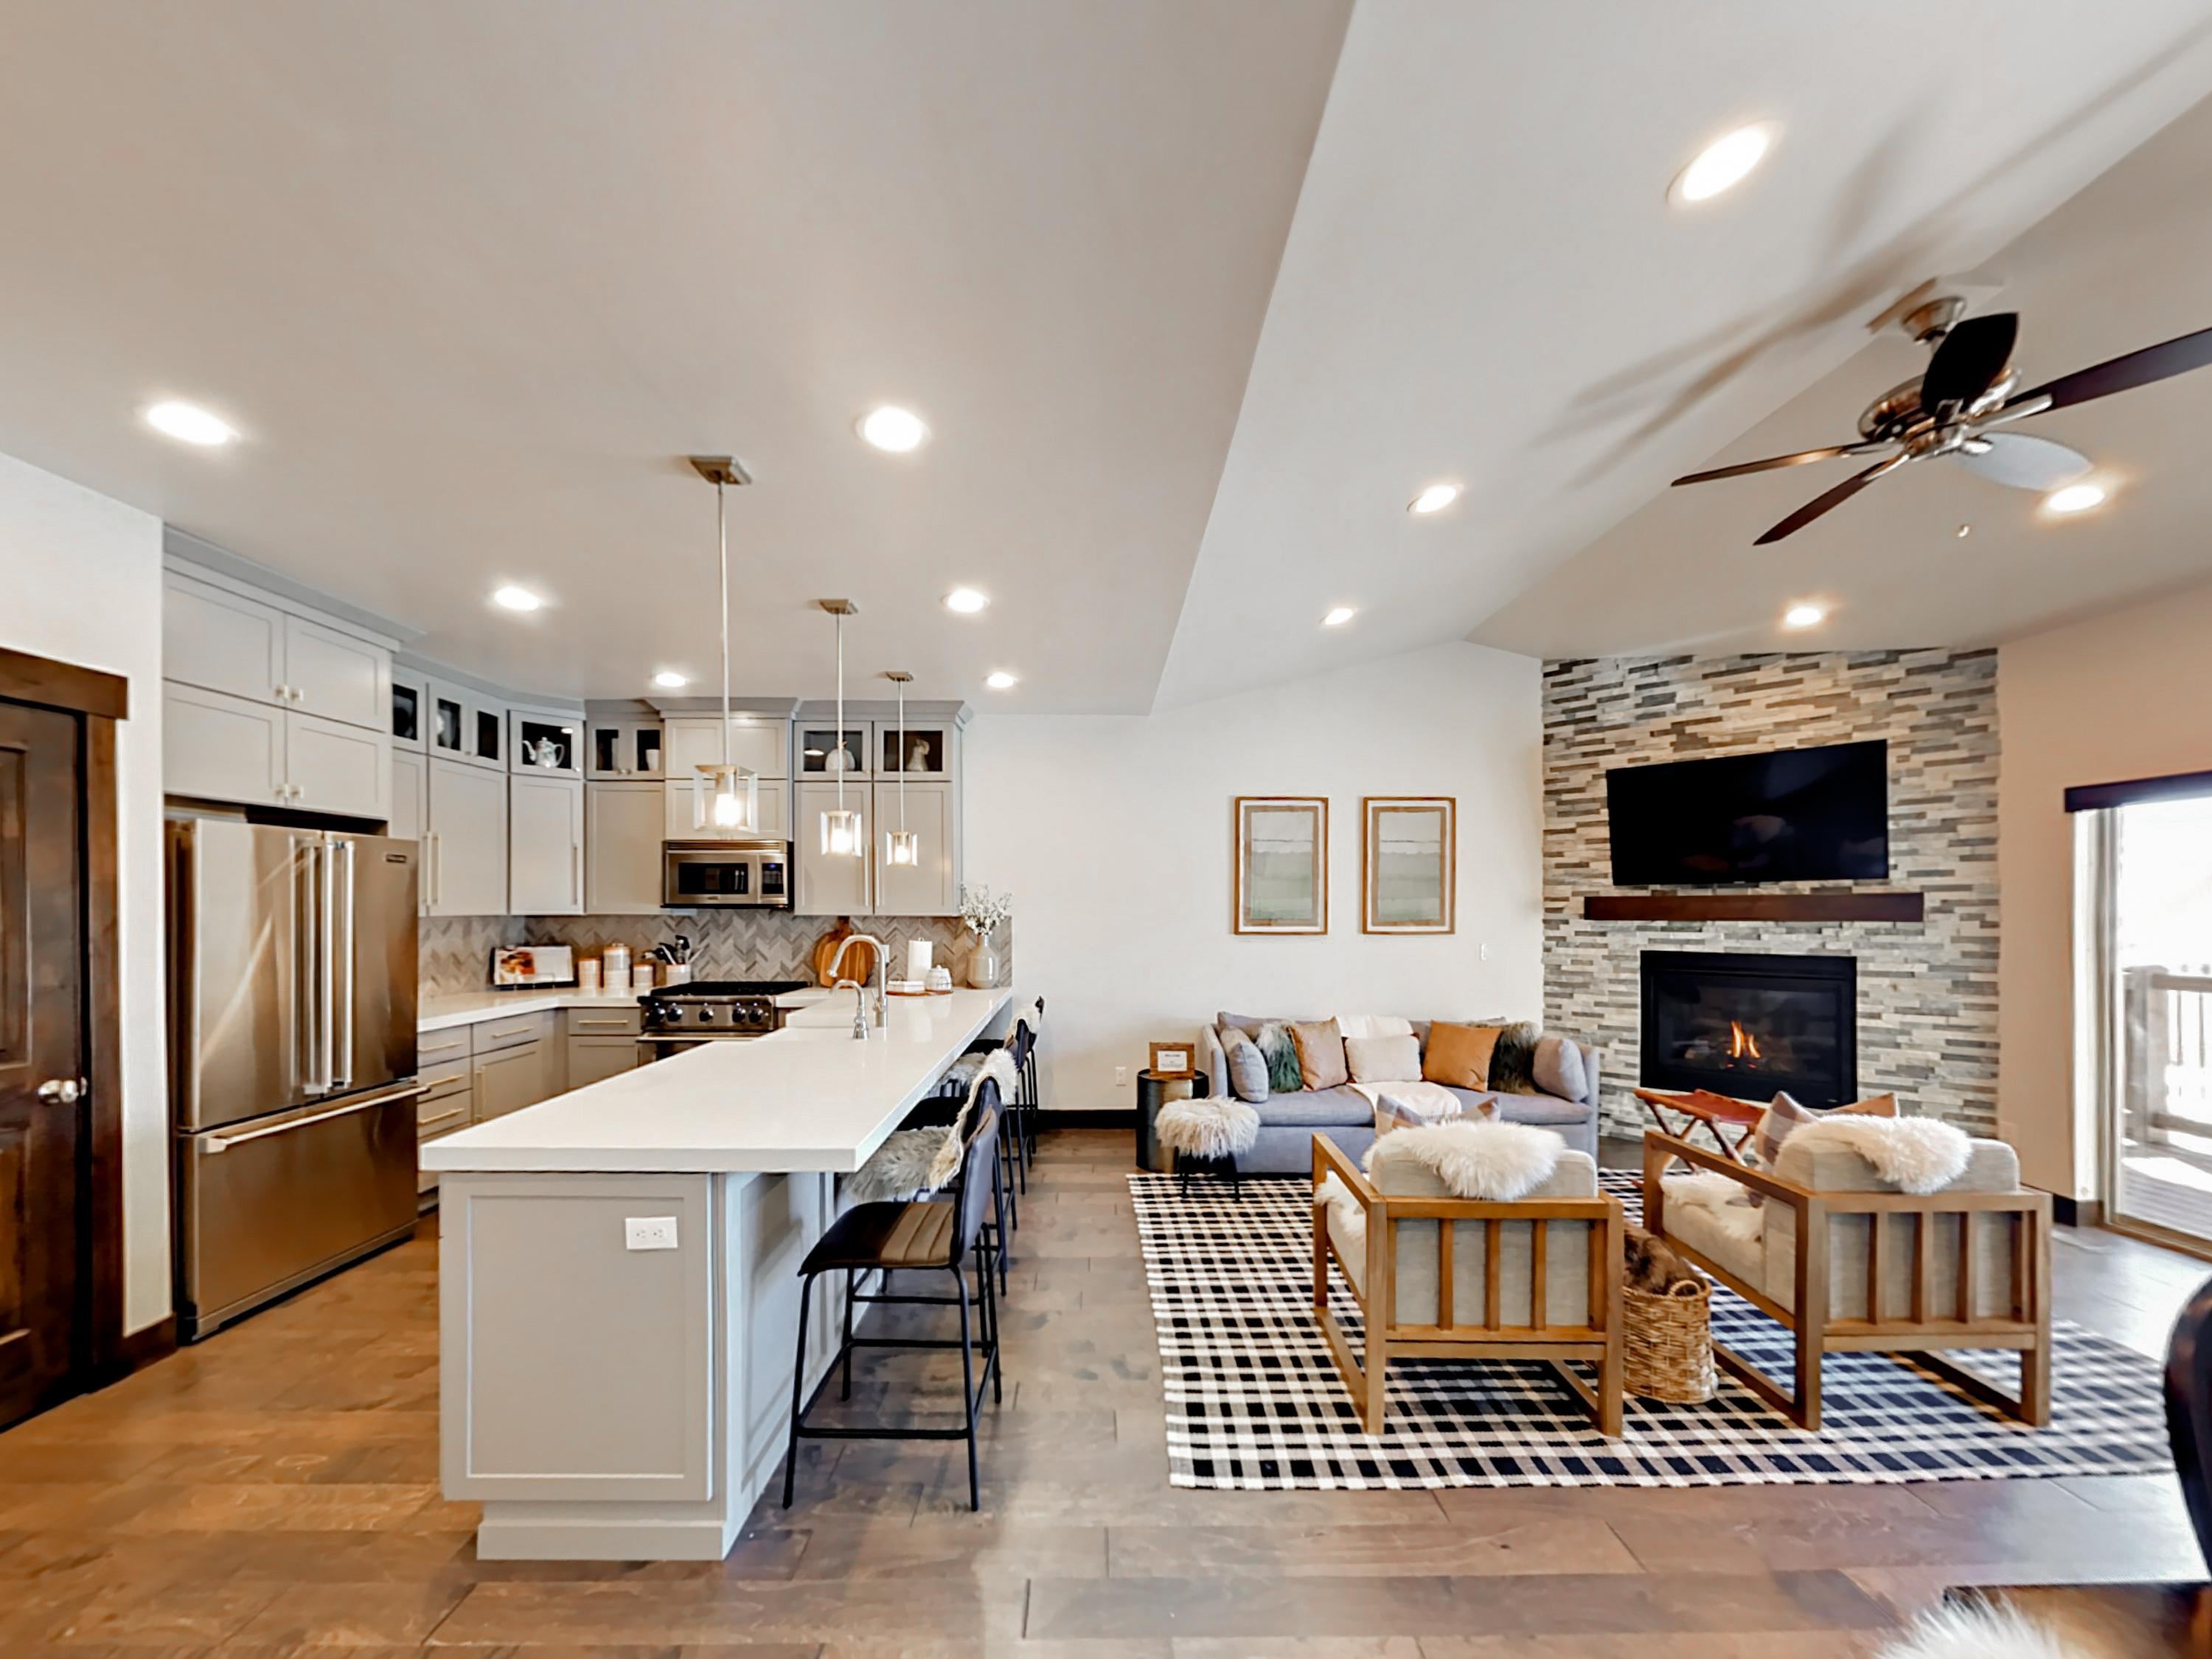 Property Image 1 - Warm and Inviting Townhome Featuring Mountain-modern Decor